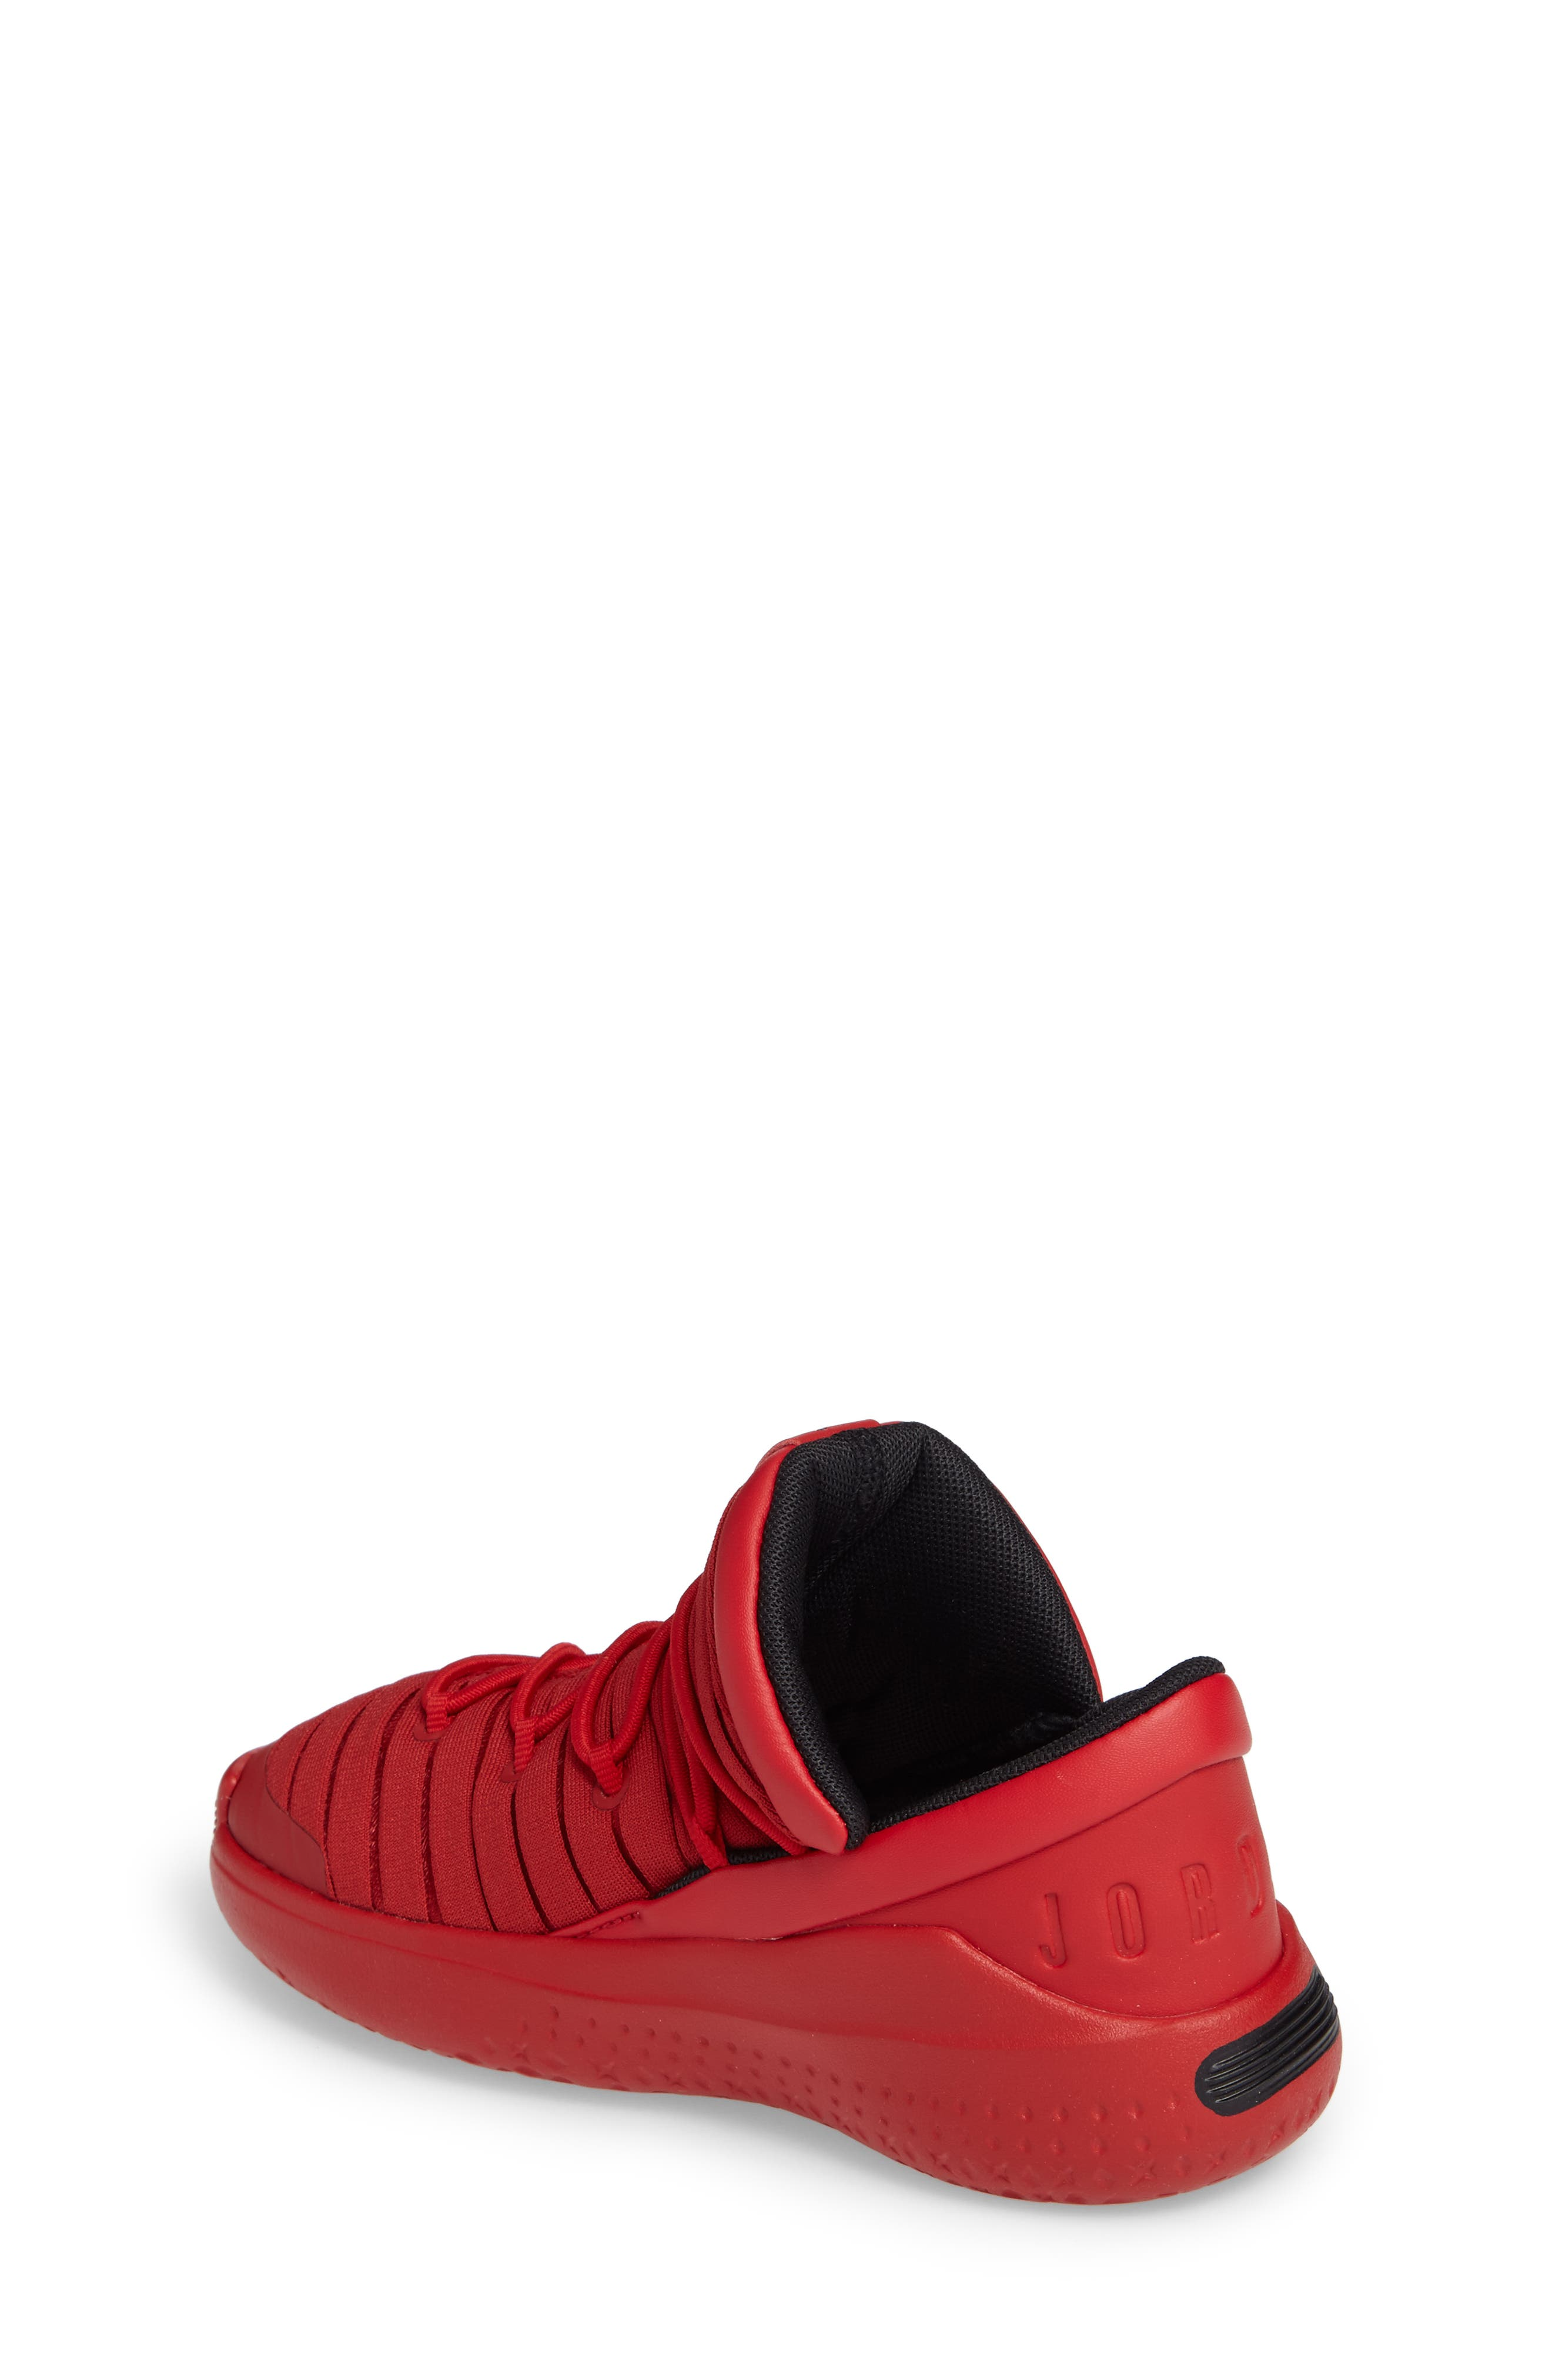 Flight Luxe Sneaker,                             Alternate thumbnail 2, color,                             Gym Red/ Black